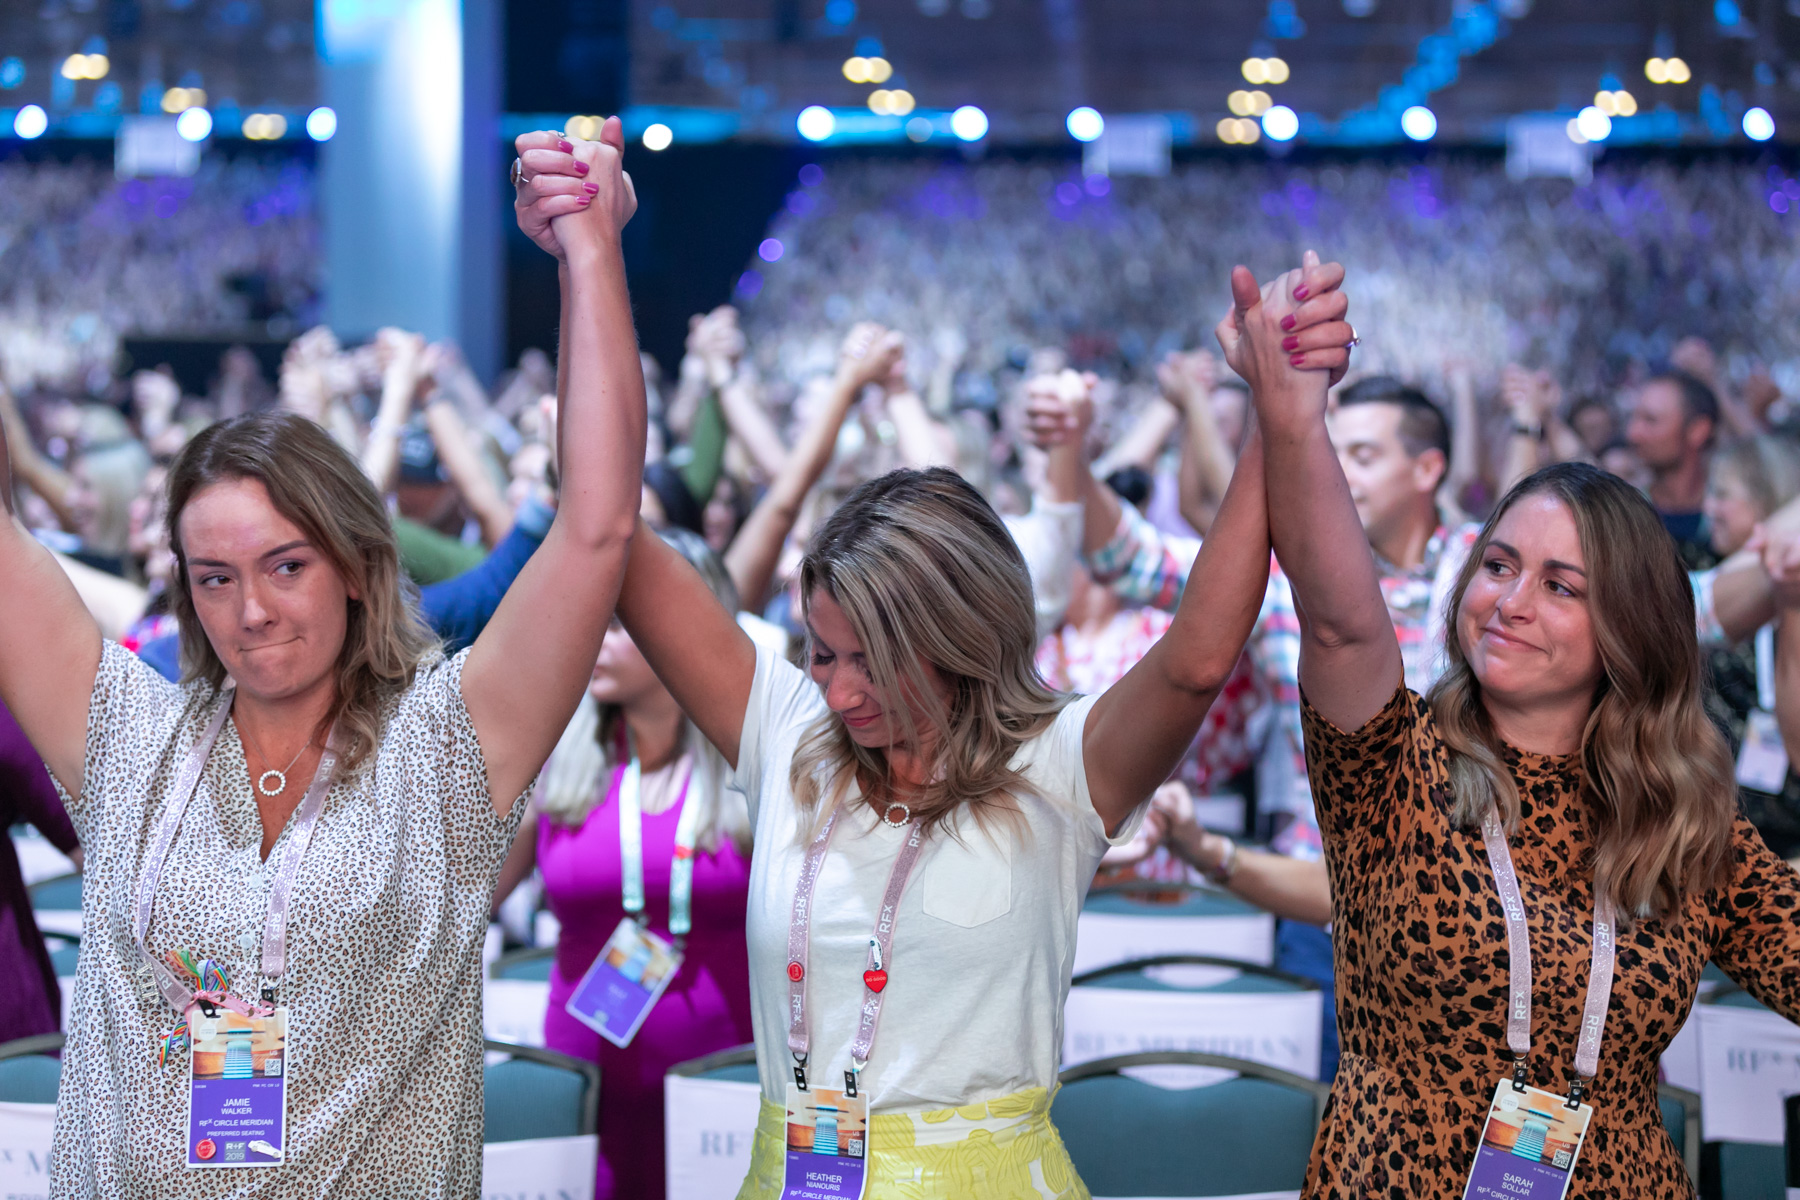 Margo Moritz captures three women with hands clasped together and raised in the air in a large crowd of convention attendees